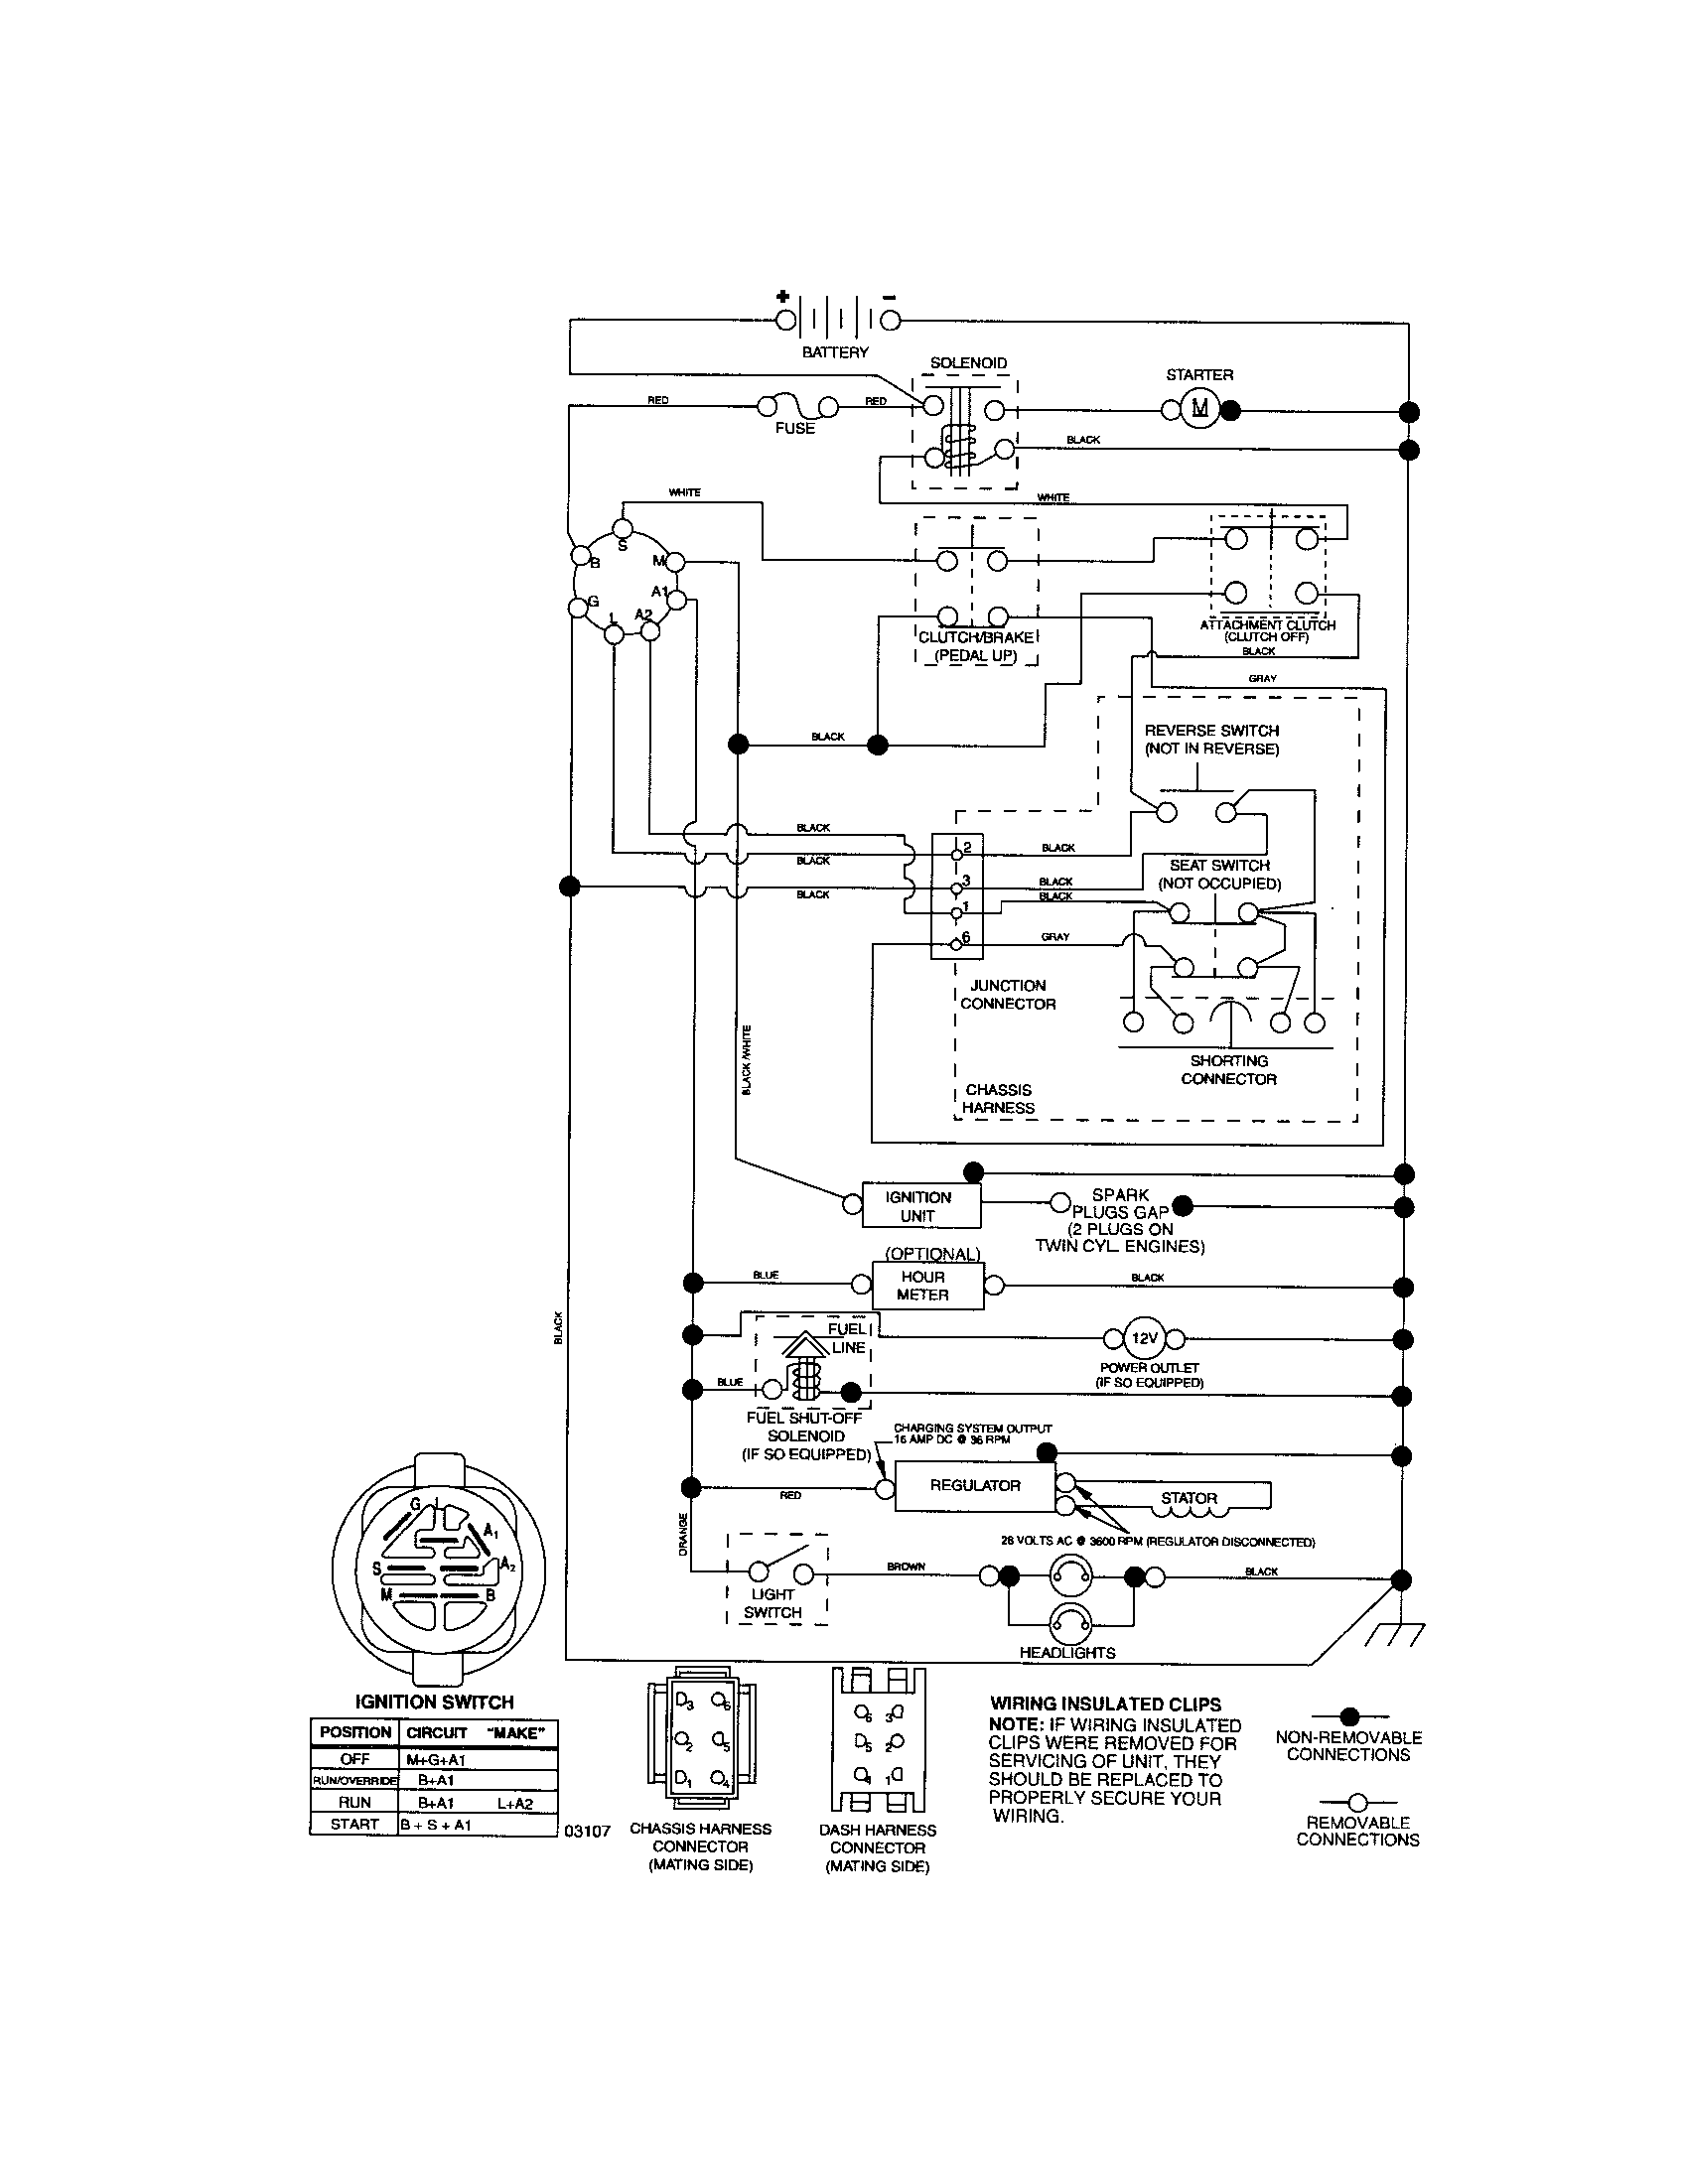 6af5f1447fd13c8443376822ddc1e105 craftsman riding mower electrical diagram wiring diagram murray riding mower wiring diagram at bayanpartner.co